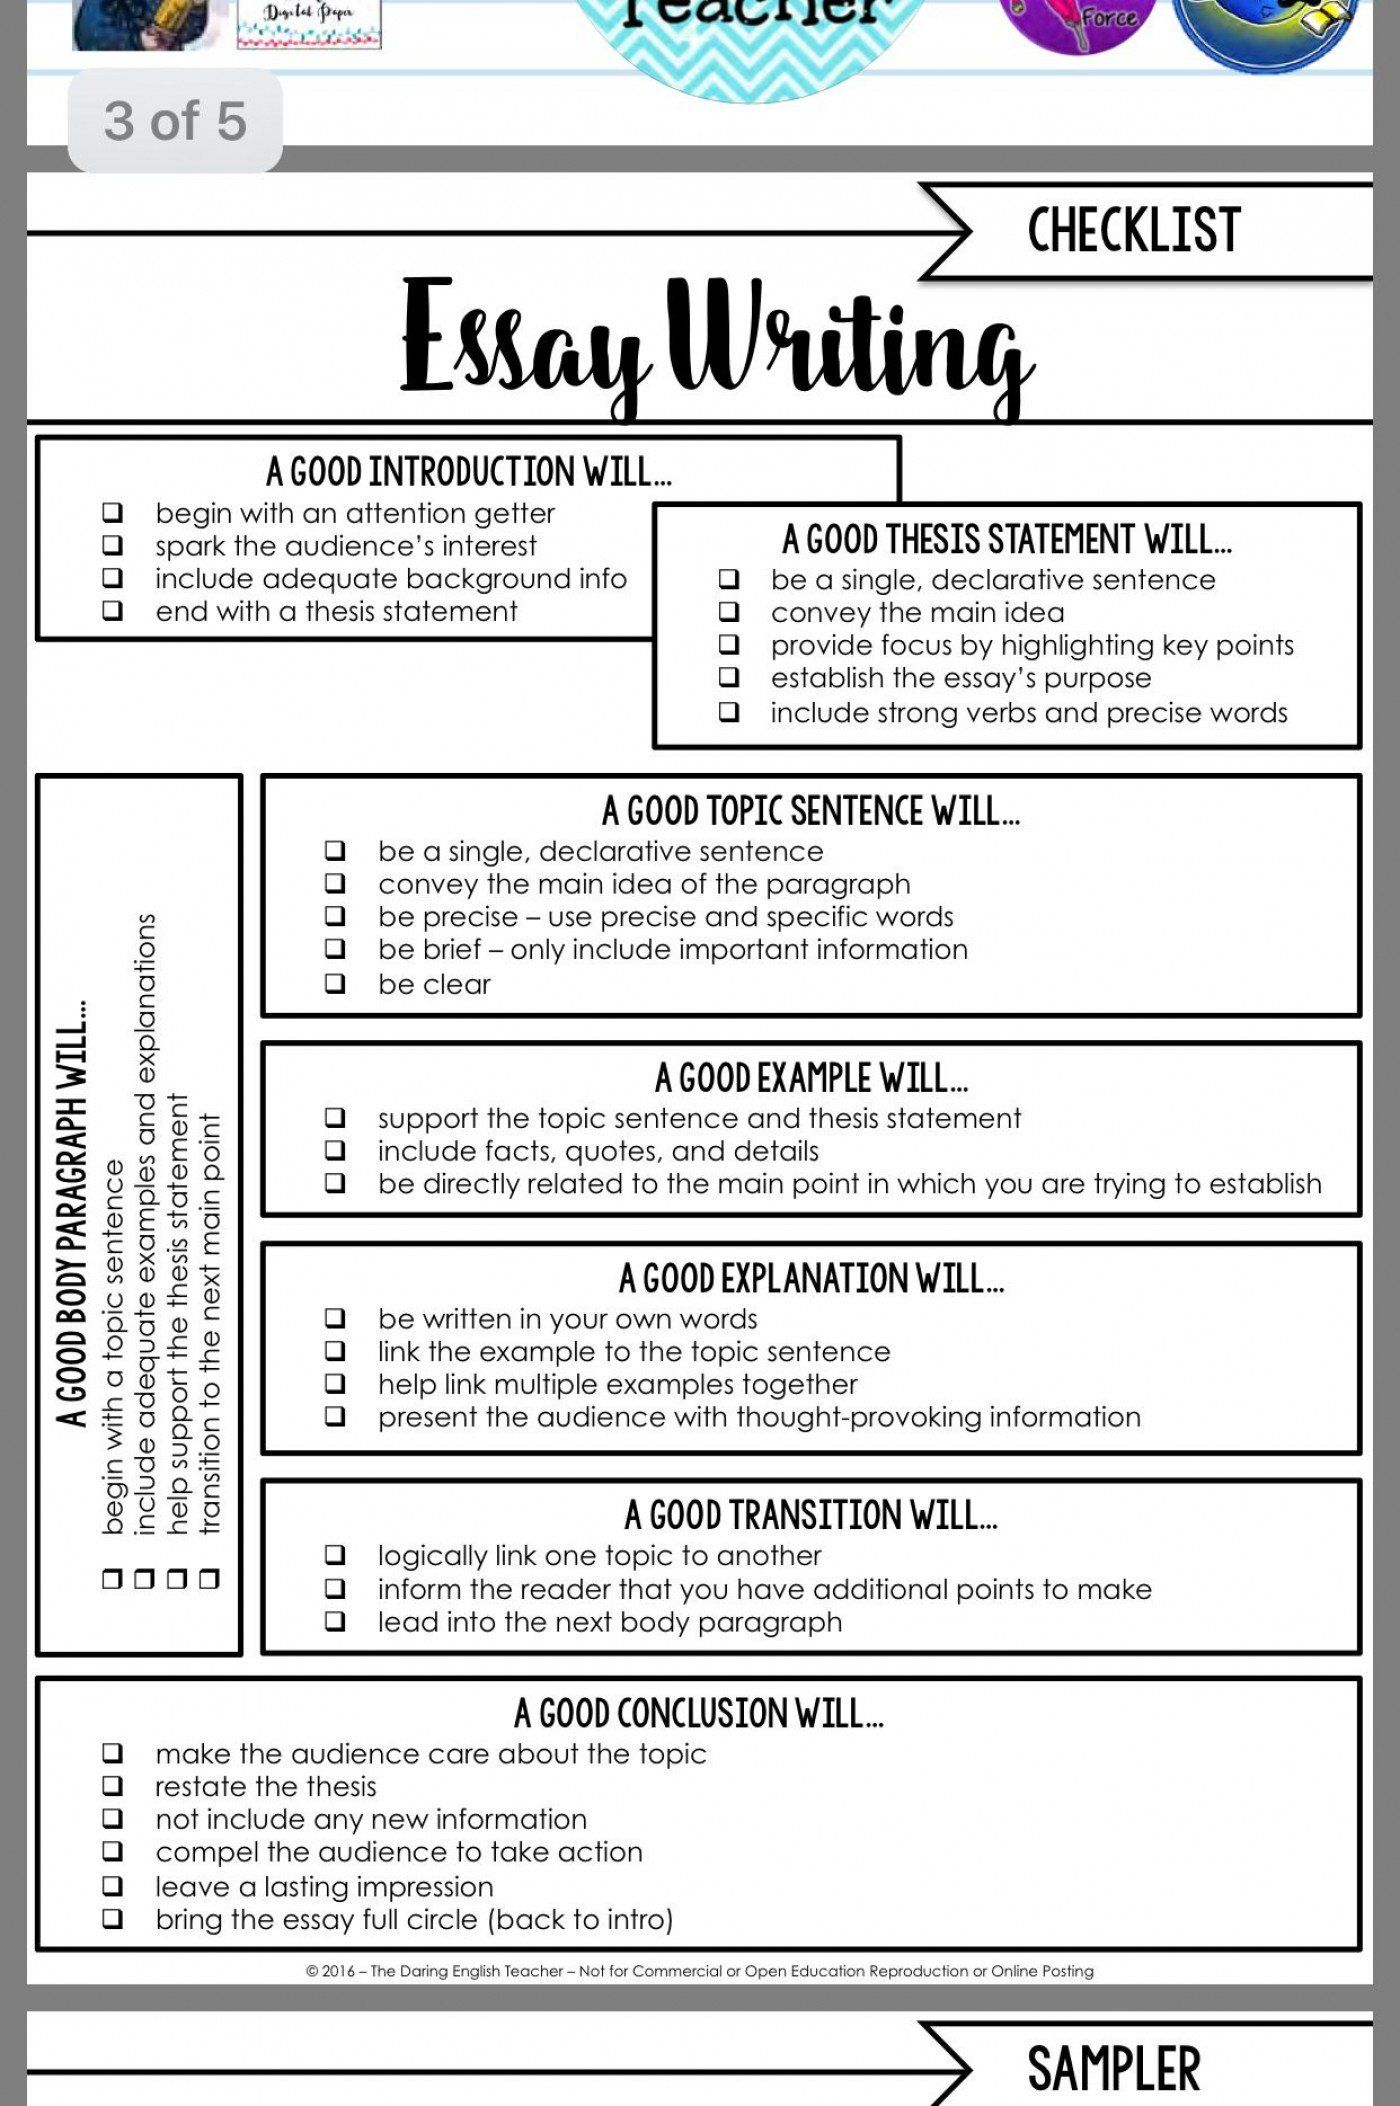 Writing Strong Lead Worksheet 003 Essay Skill Example Good English Lesson Middle School On Skills